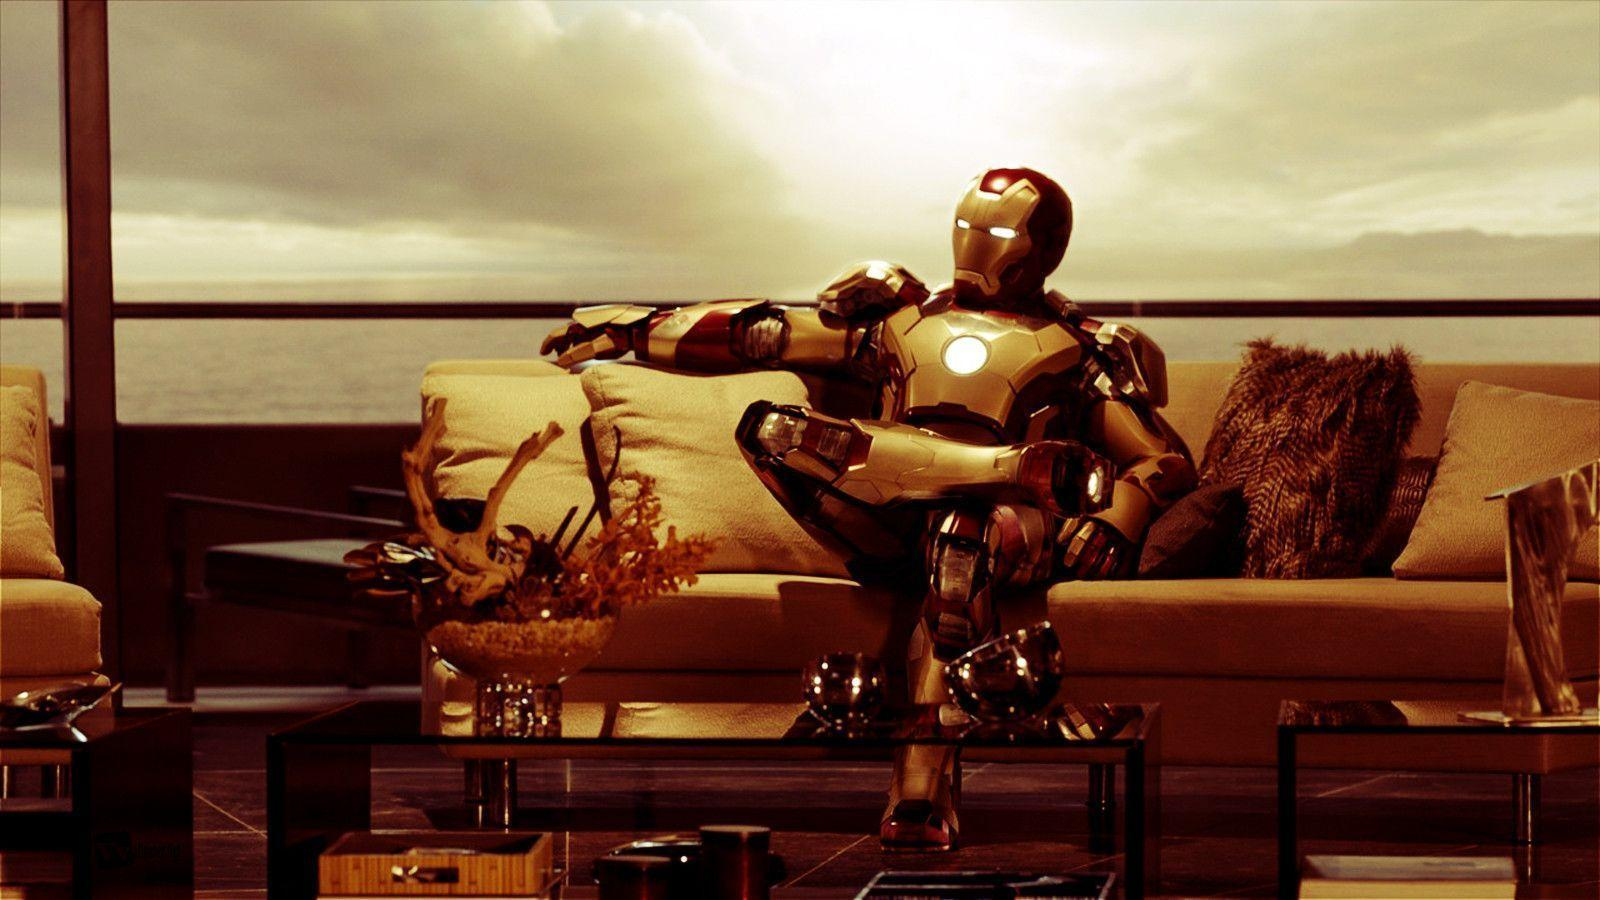 Marvel Iron Man 3 Movie HD Wallpaper